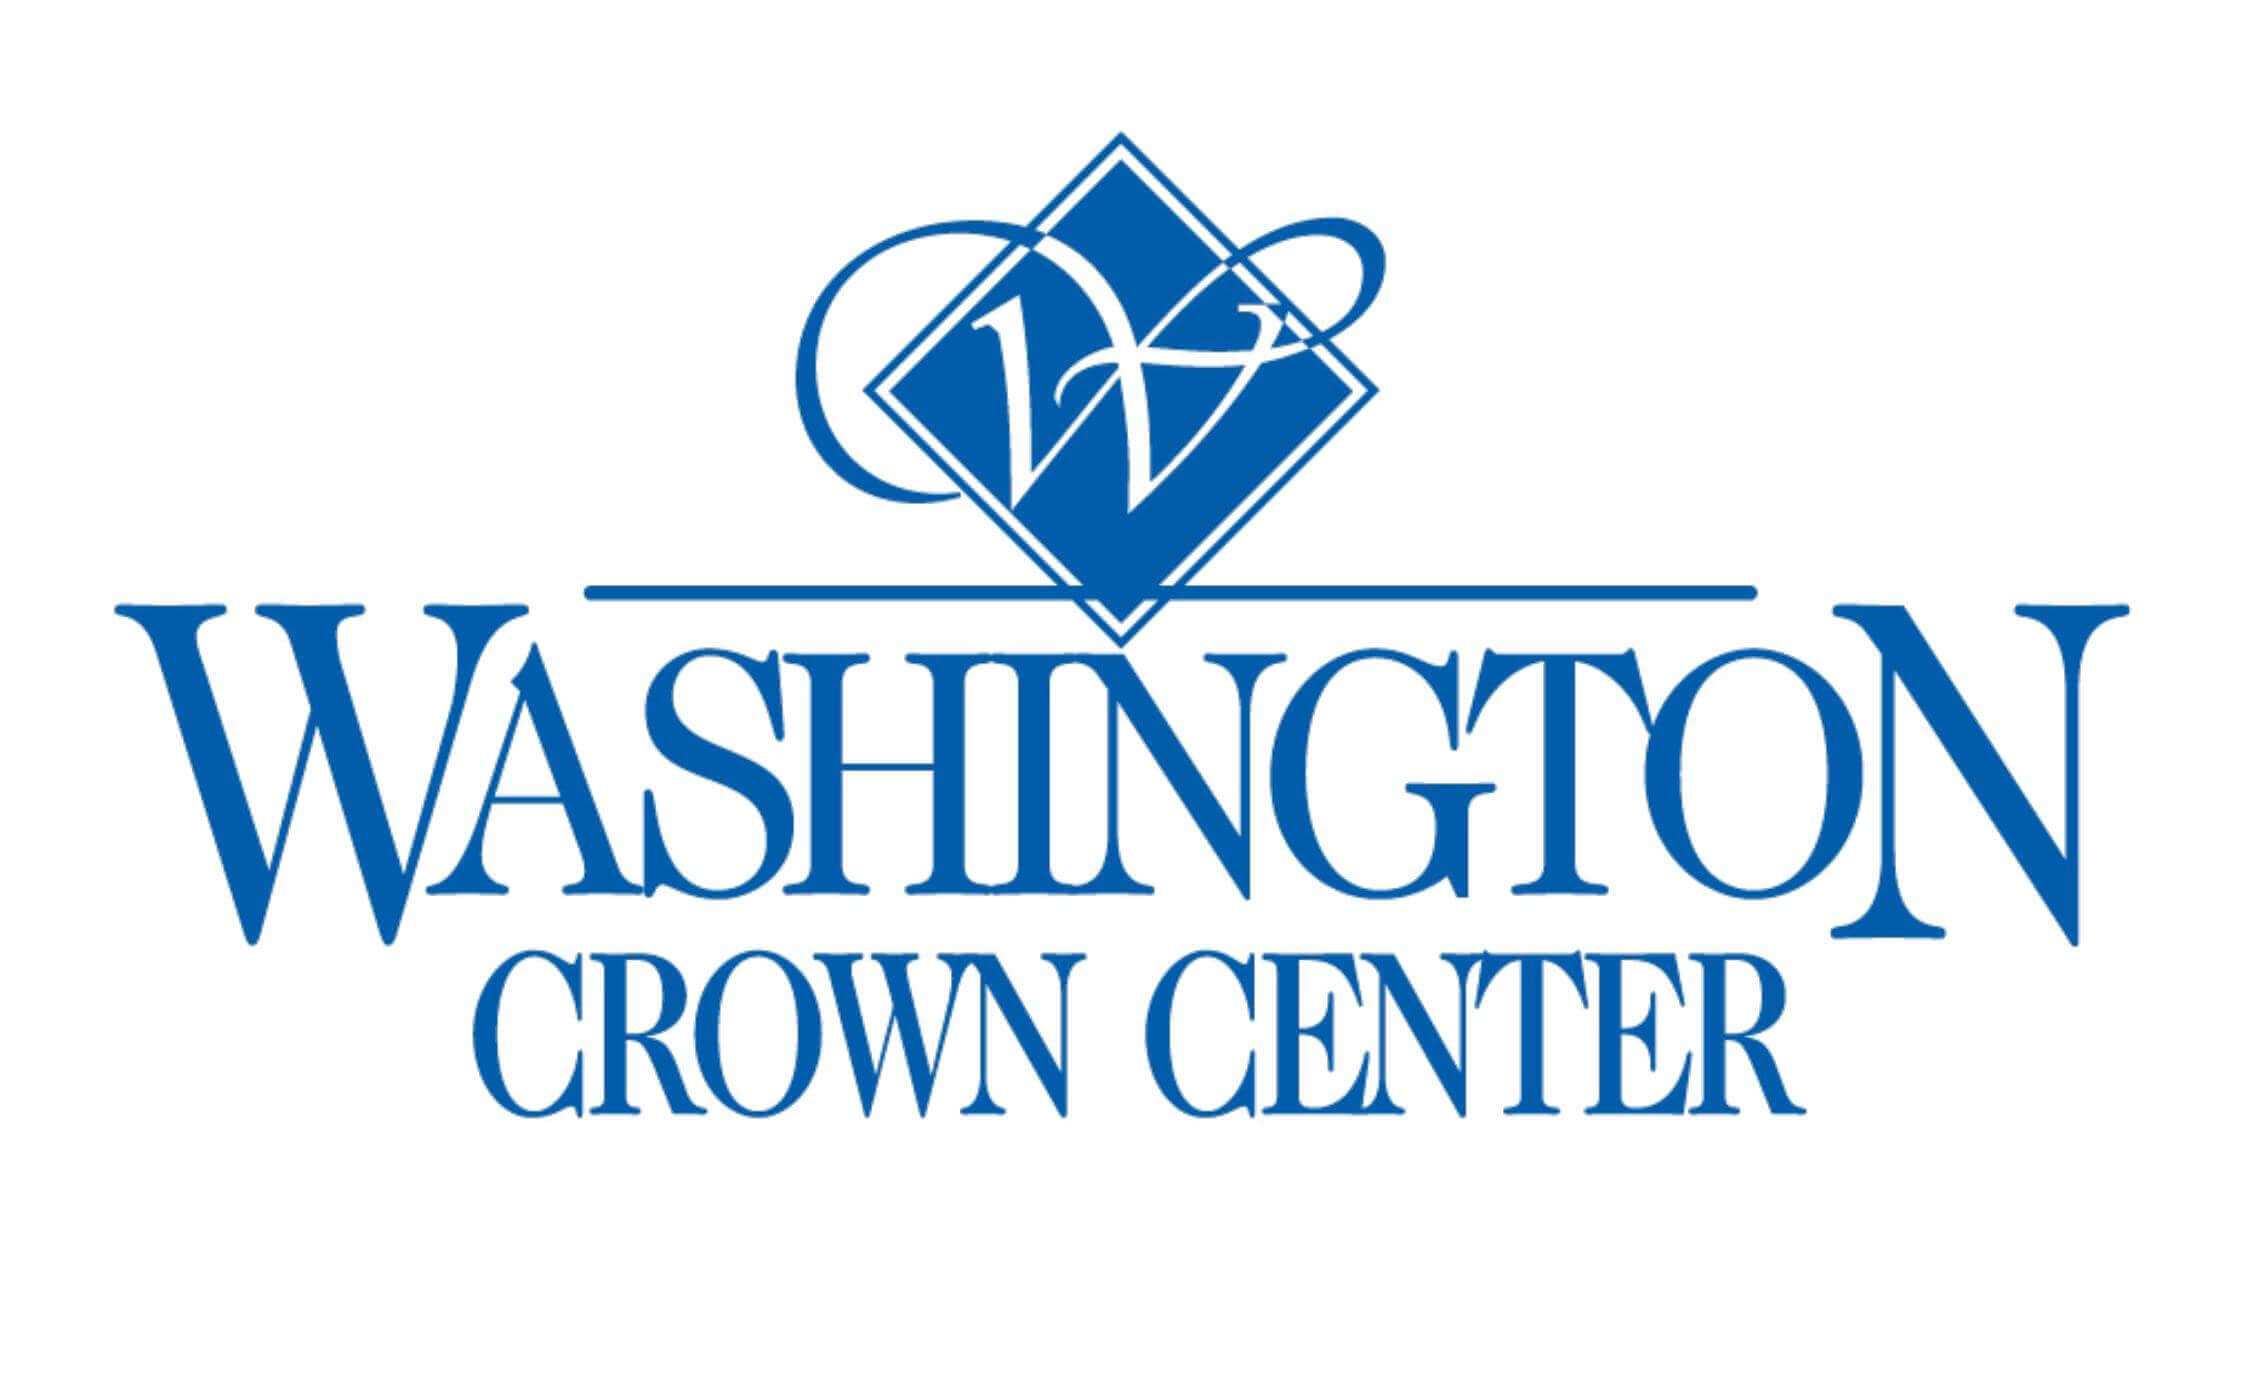 Washington Crown Center logo with link to homepage